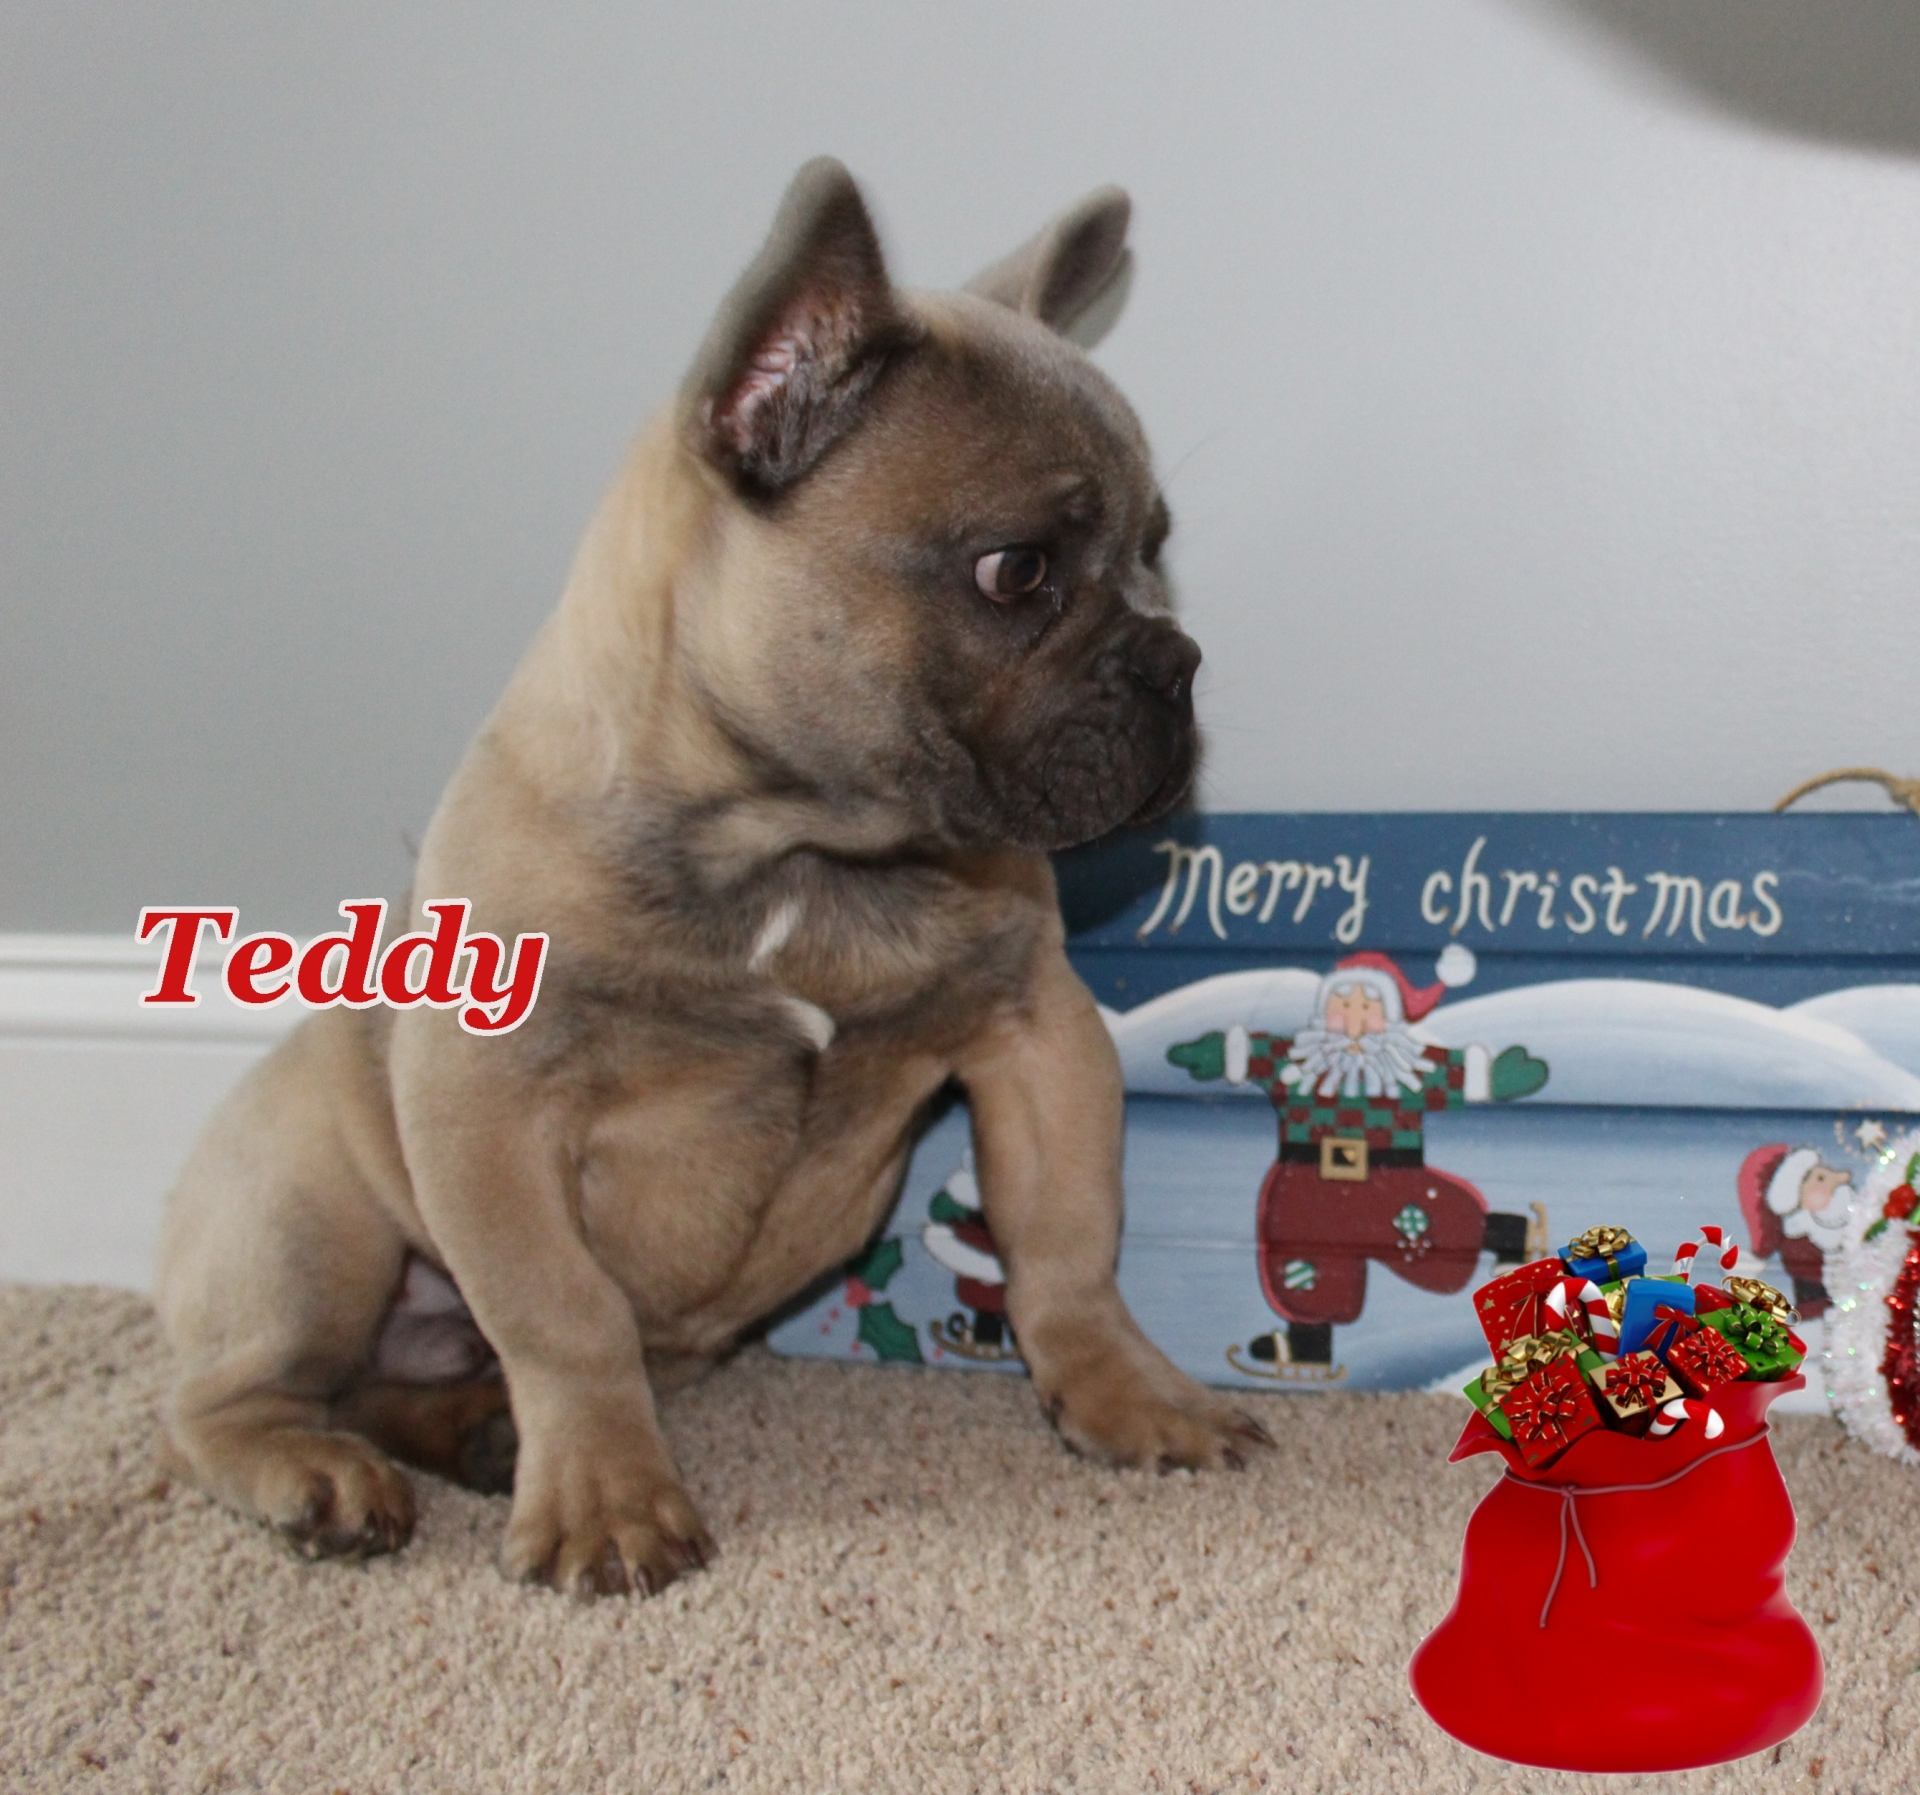 #Teddy #FrenchBulldog #Frenchie #BlueFrenchBulldog #AvailPuppies #FrenchieLove #SouthernTerritory